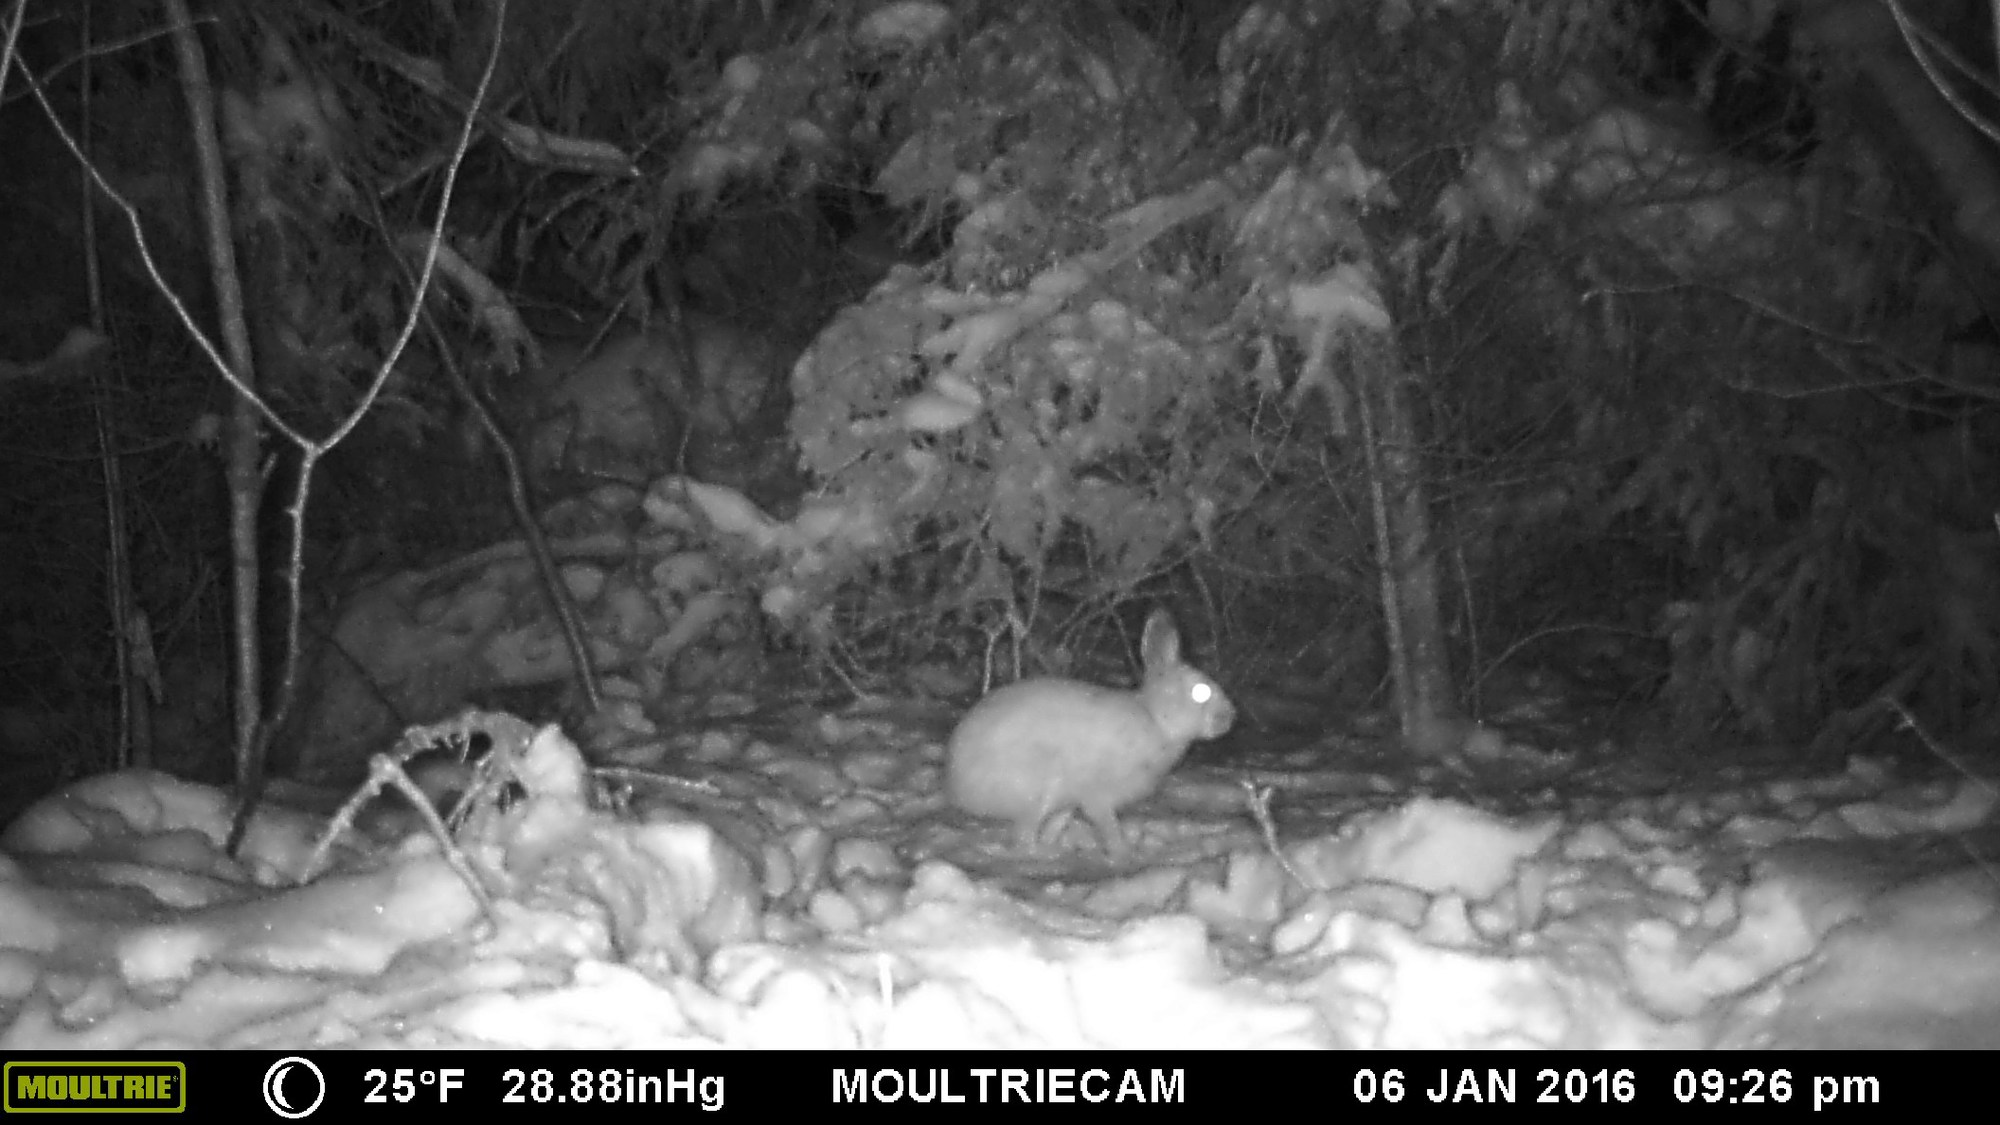 A black-and-white trail camera image shows a snowshoe hare at night.